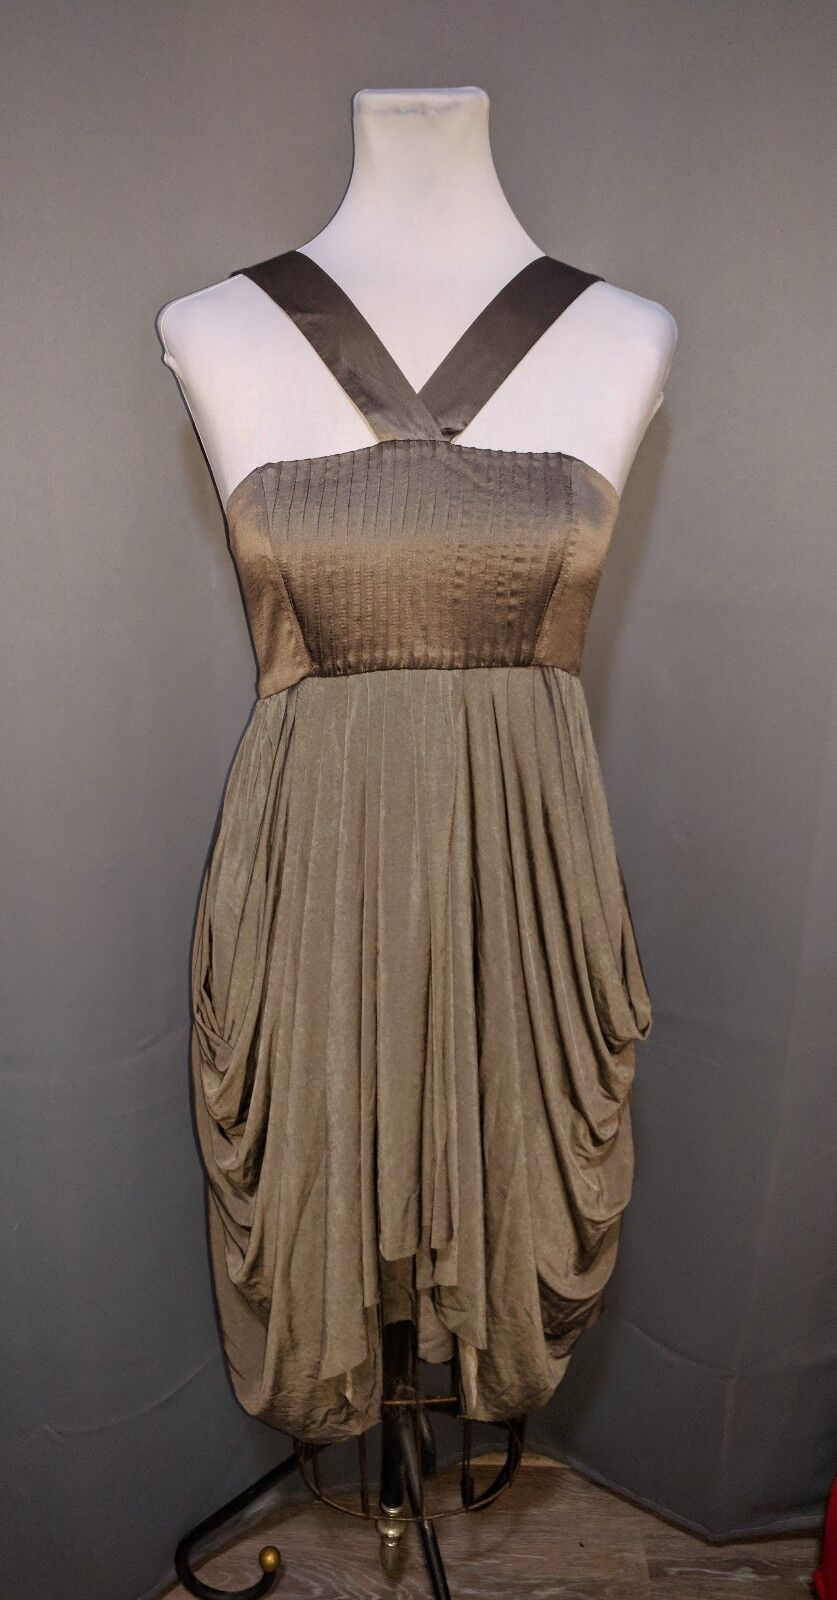 New NWOT Alice + Olivia   Alice and Olivia Silk Dress Army Green Halter Small S